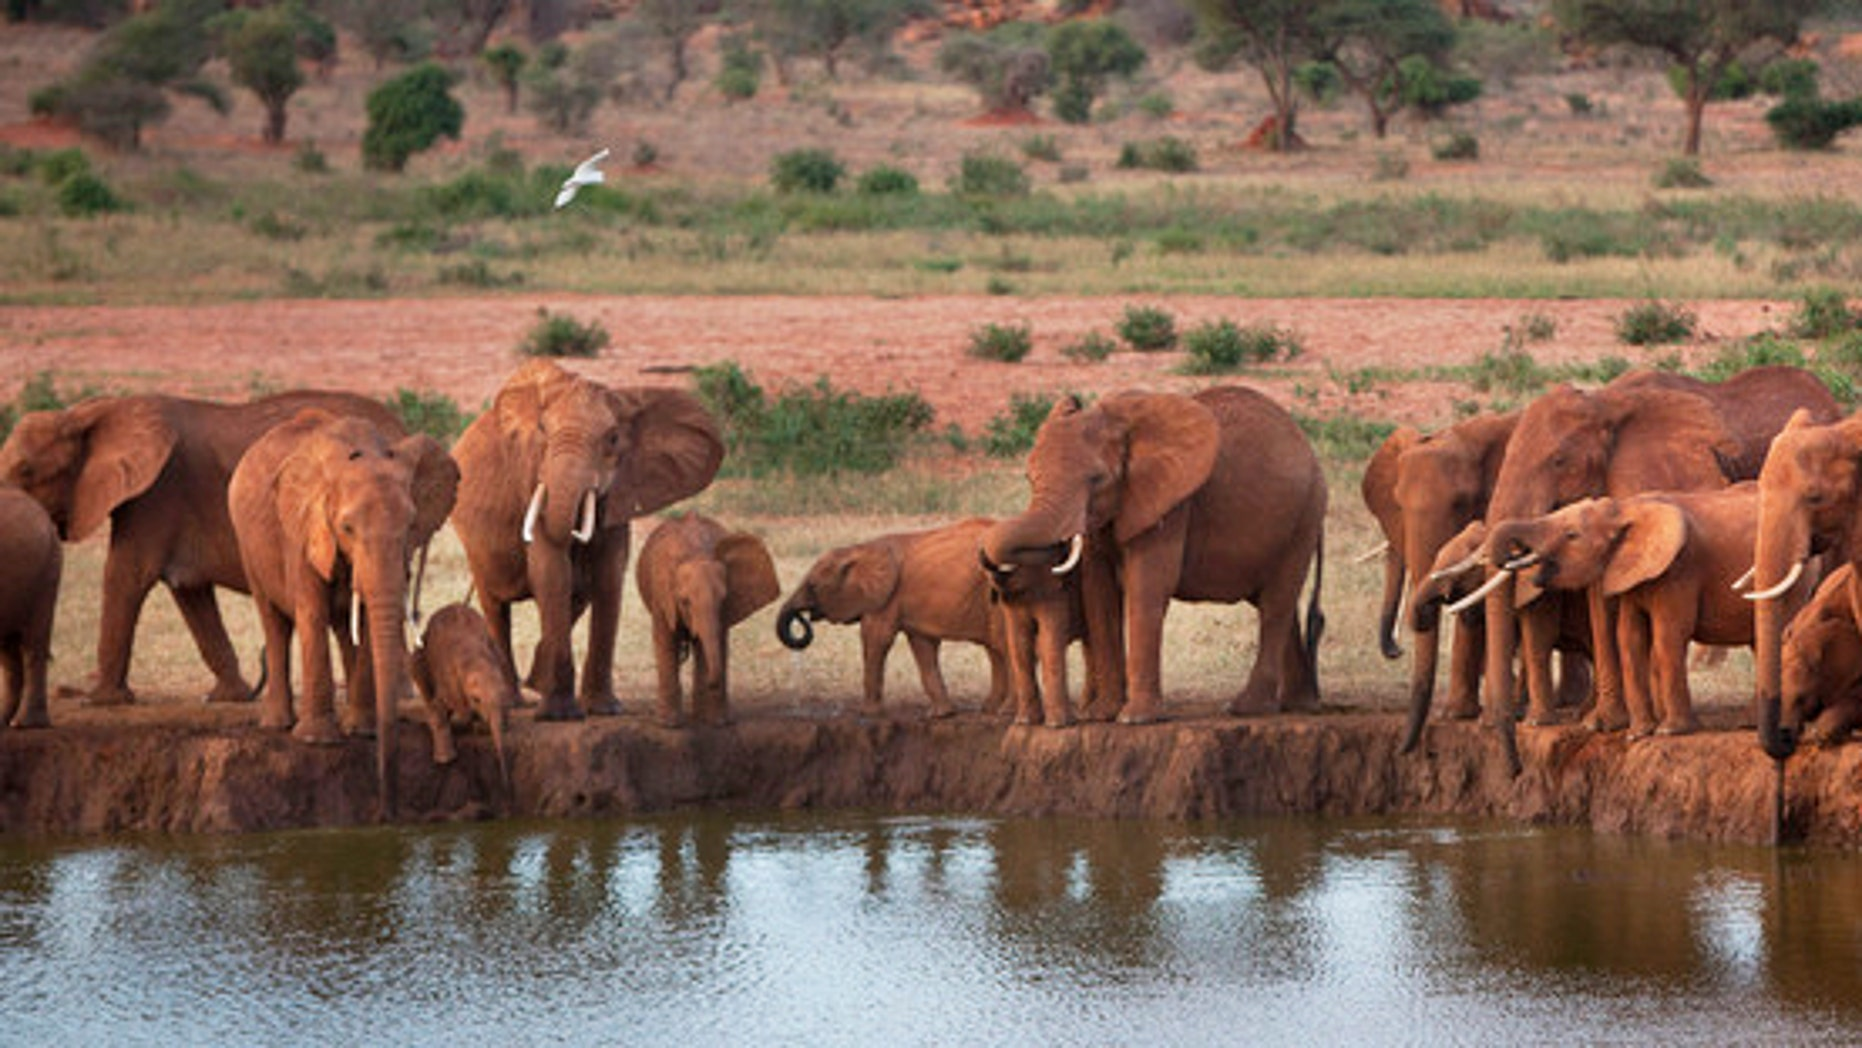 African elephants gather at a watering hole in Tsavo East National Park, Kenya.